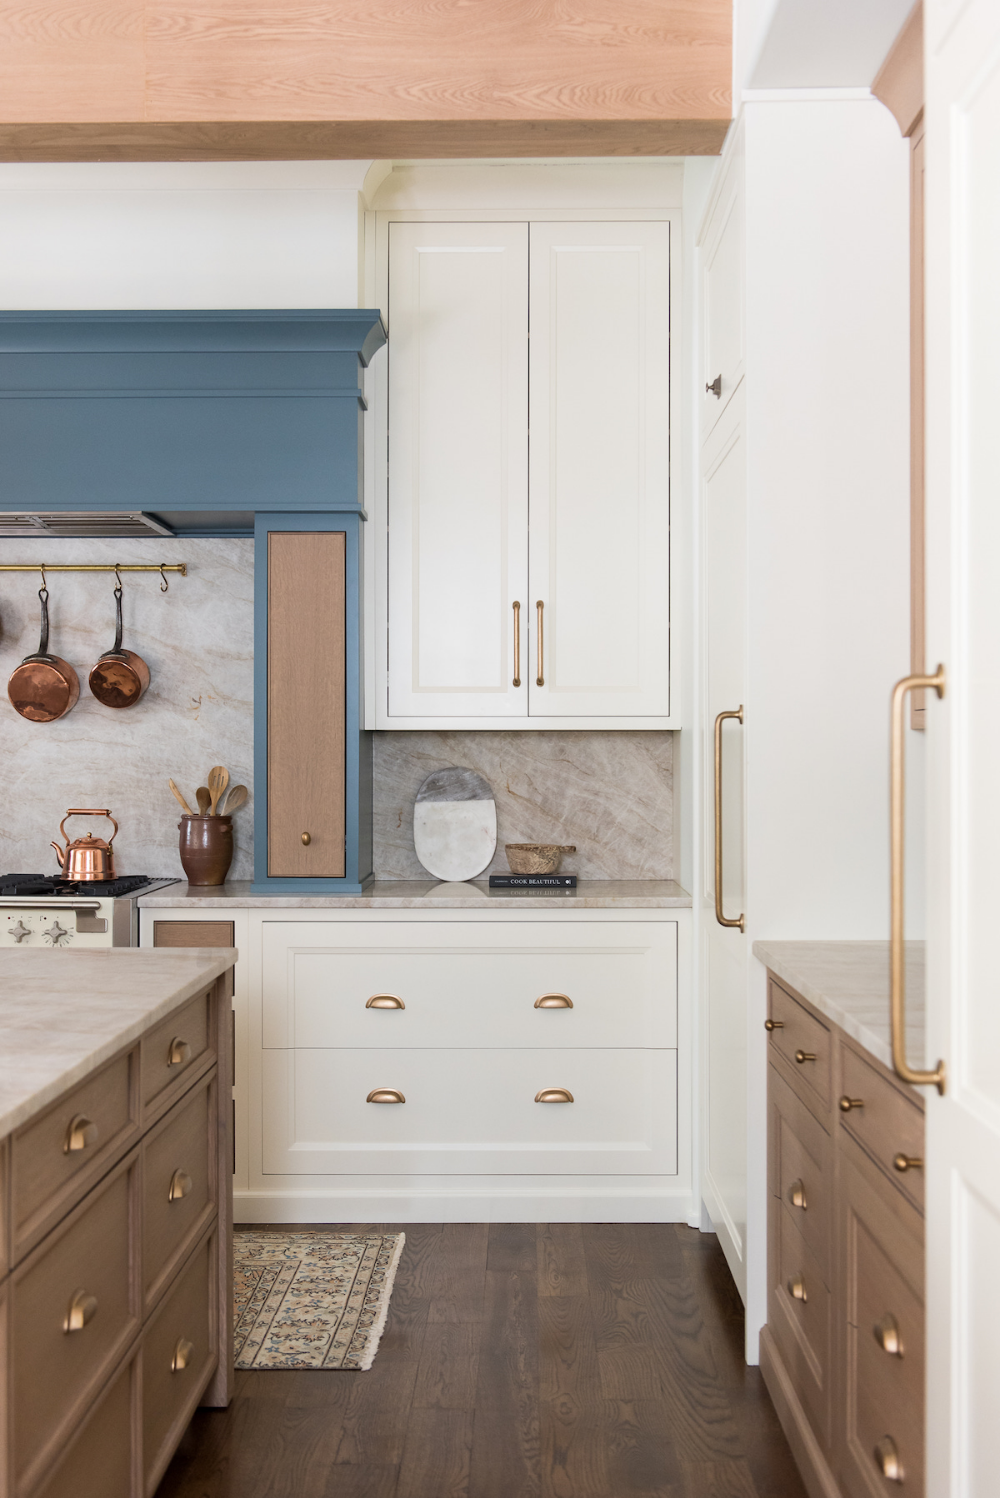 European Inspired Home Tour With A Dream Kitchen In 2020 Dream